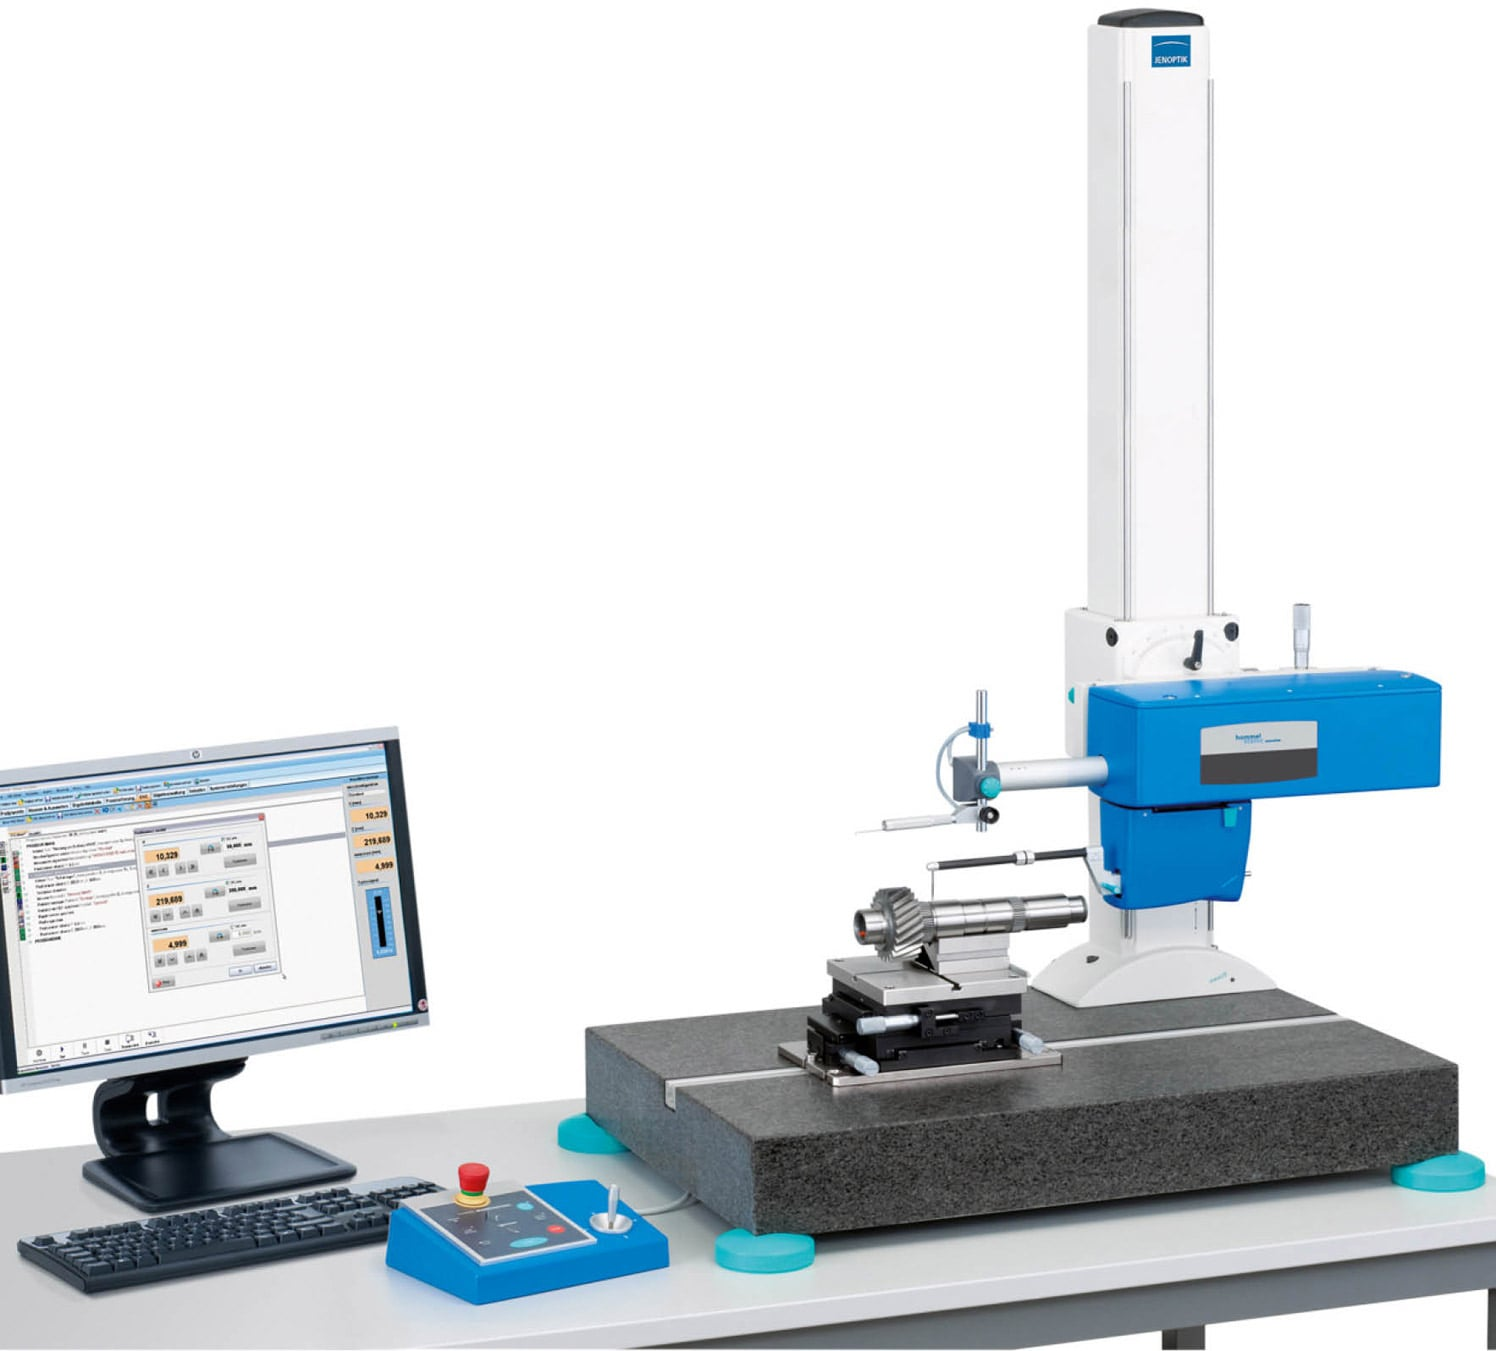 Hommel-Etamic T8000 RC - For Contour and Roughness Measurement